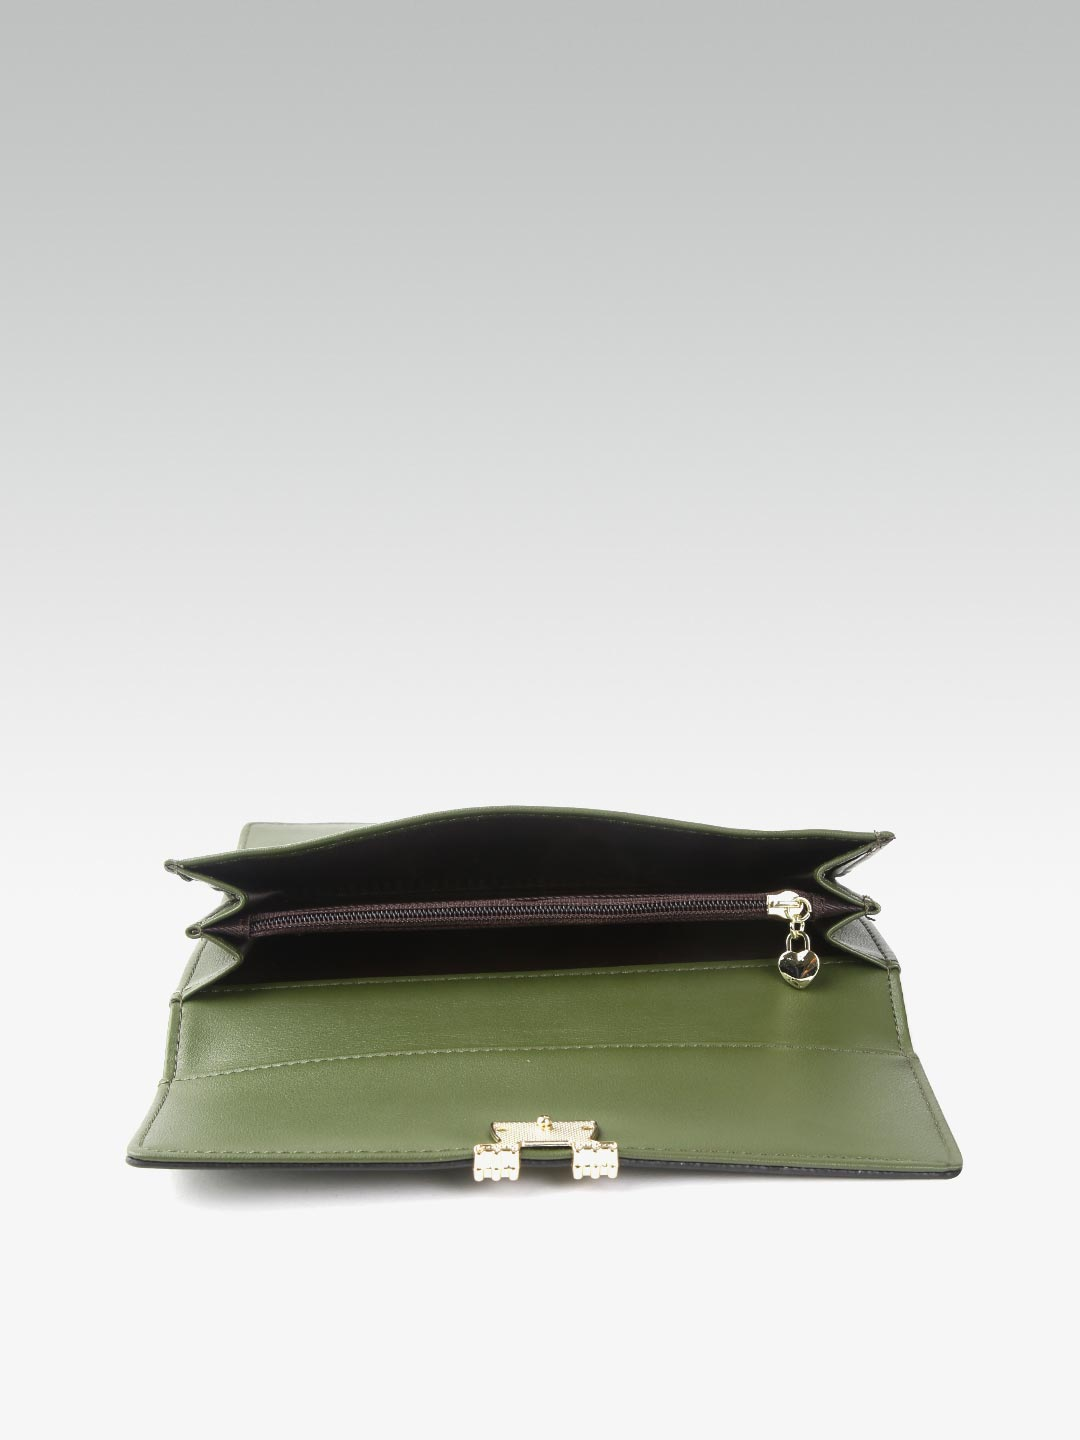 Wallets and Makeup Pouches-The Color Of Envy Wallet6